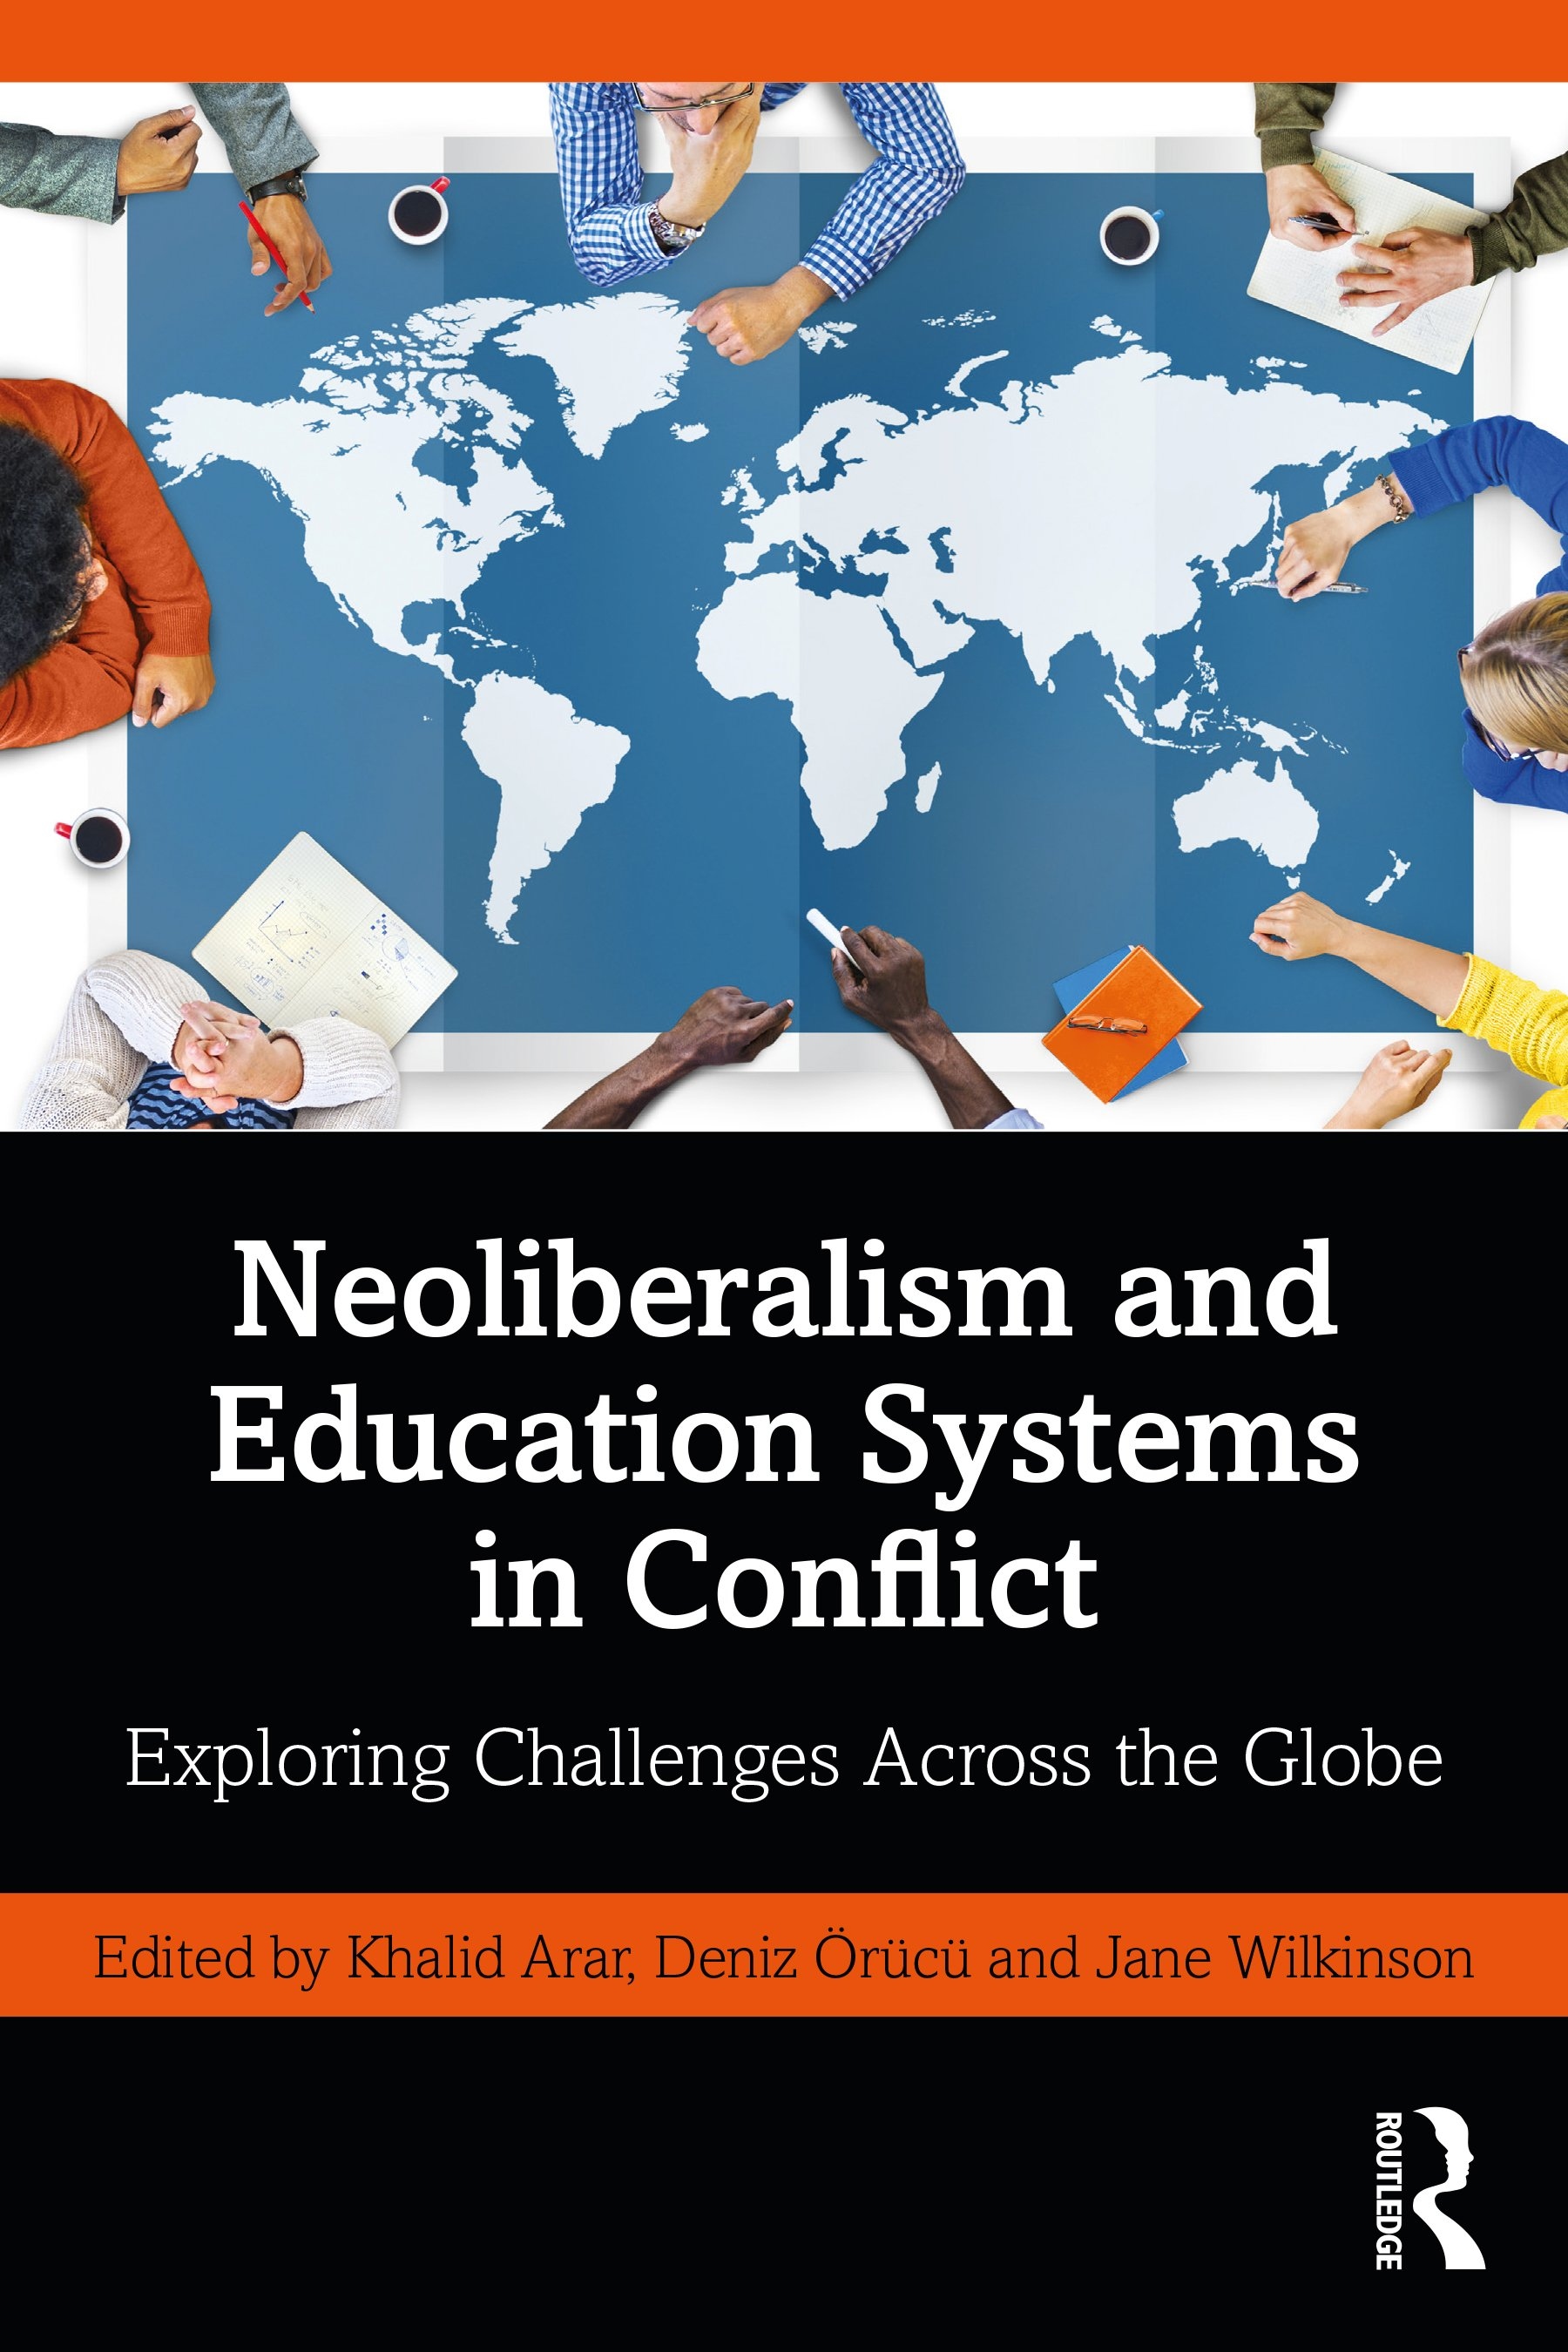 Neoliberalism and Education Systems in Conflict